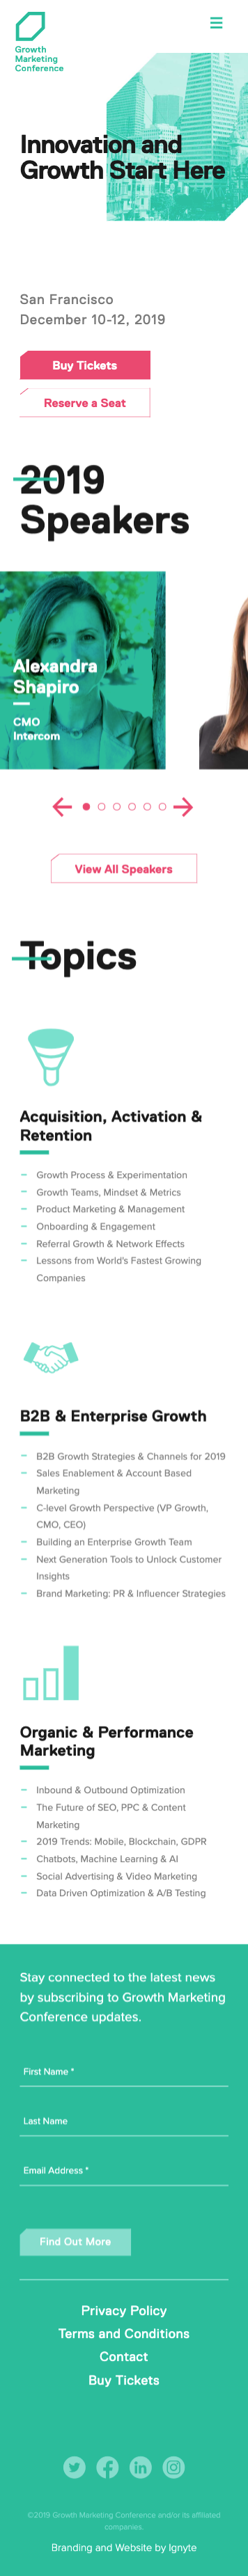 Ignyte-branding-agency-web-design-growth-marketing-conference-mobile-home-page